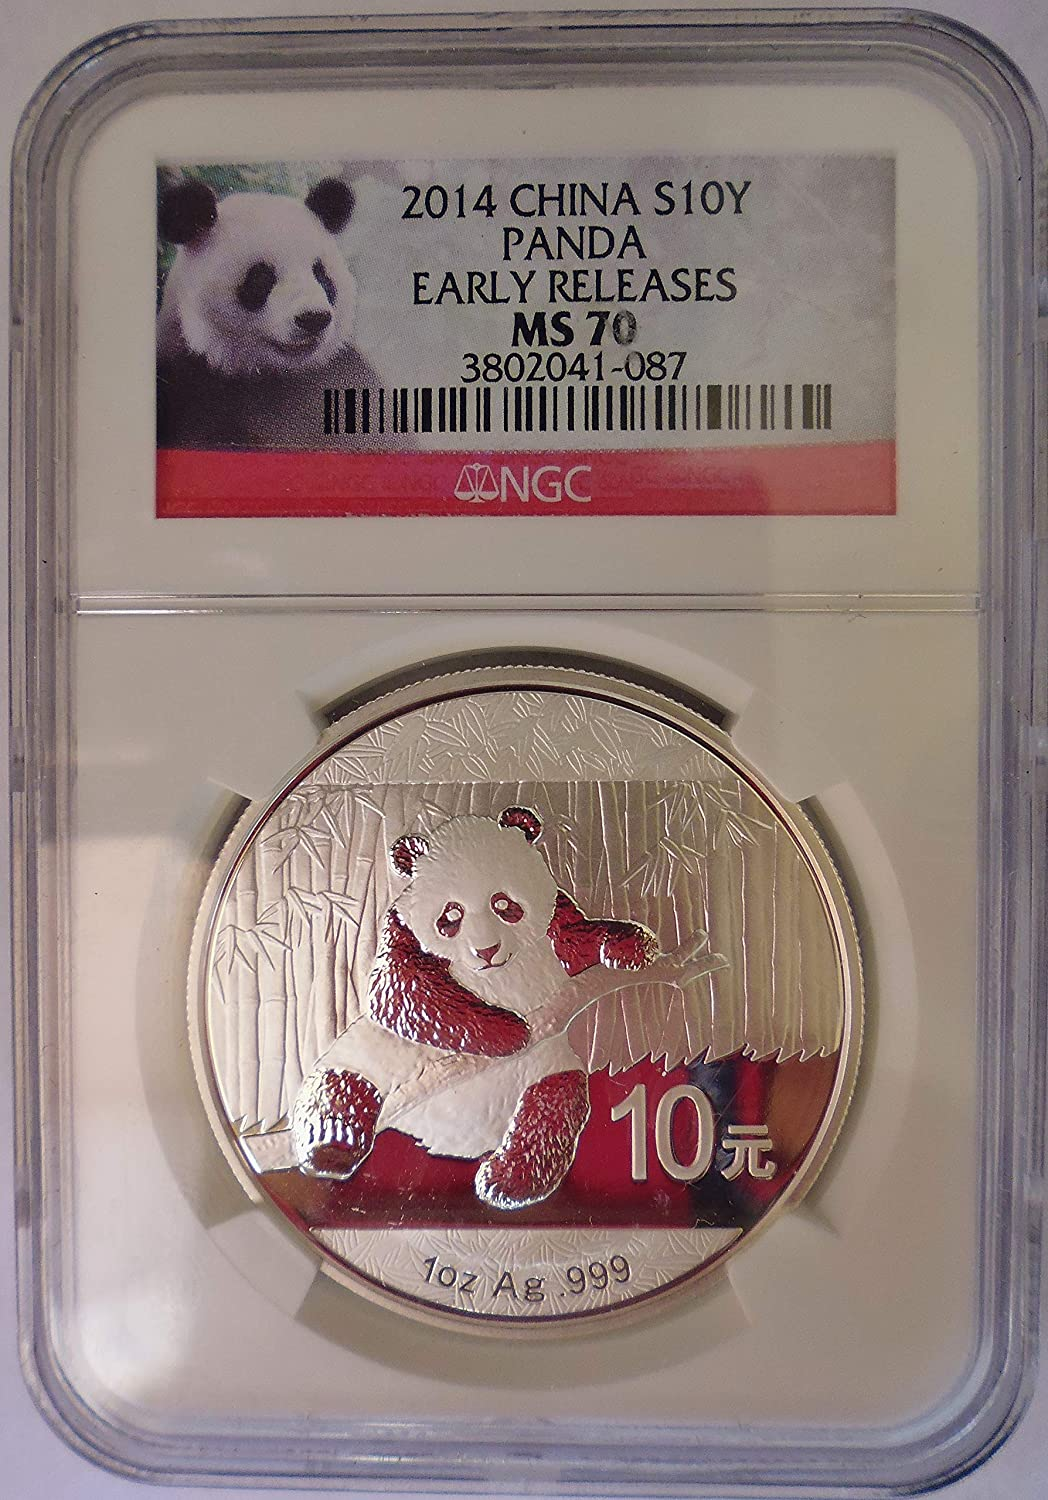 NGC MS70 China 2010 1oz Silver Panda Coin